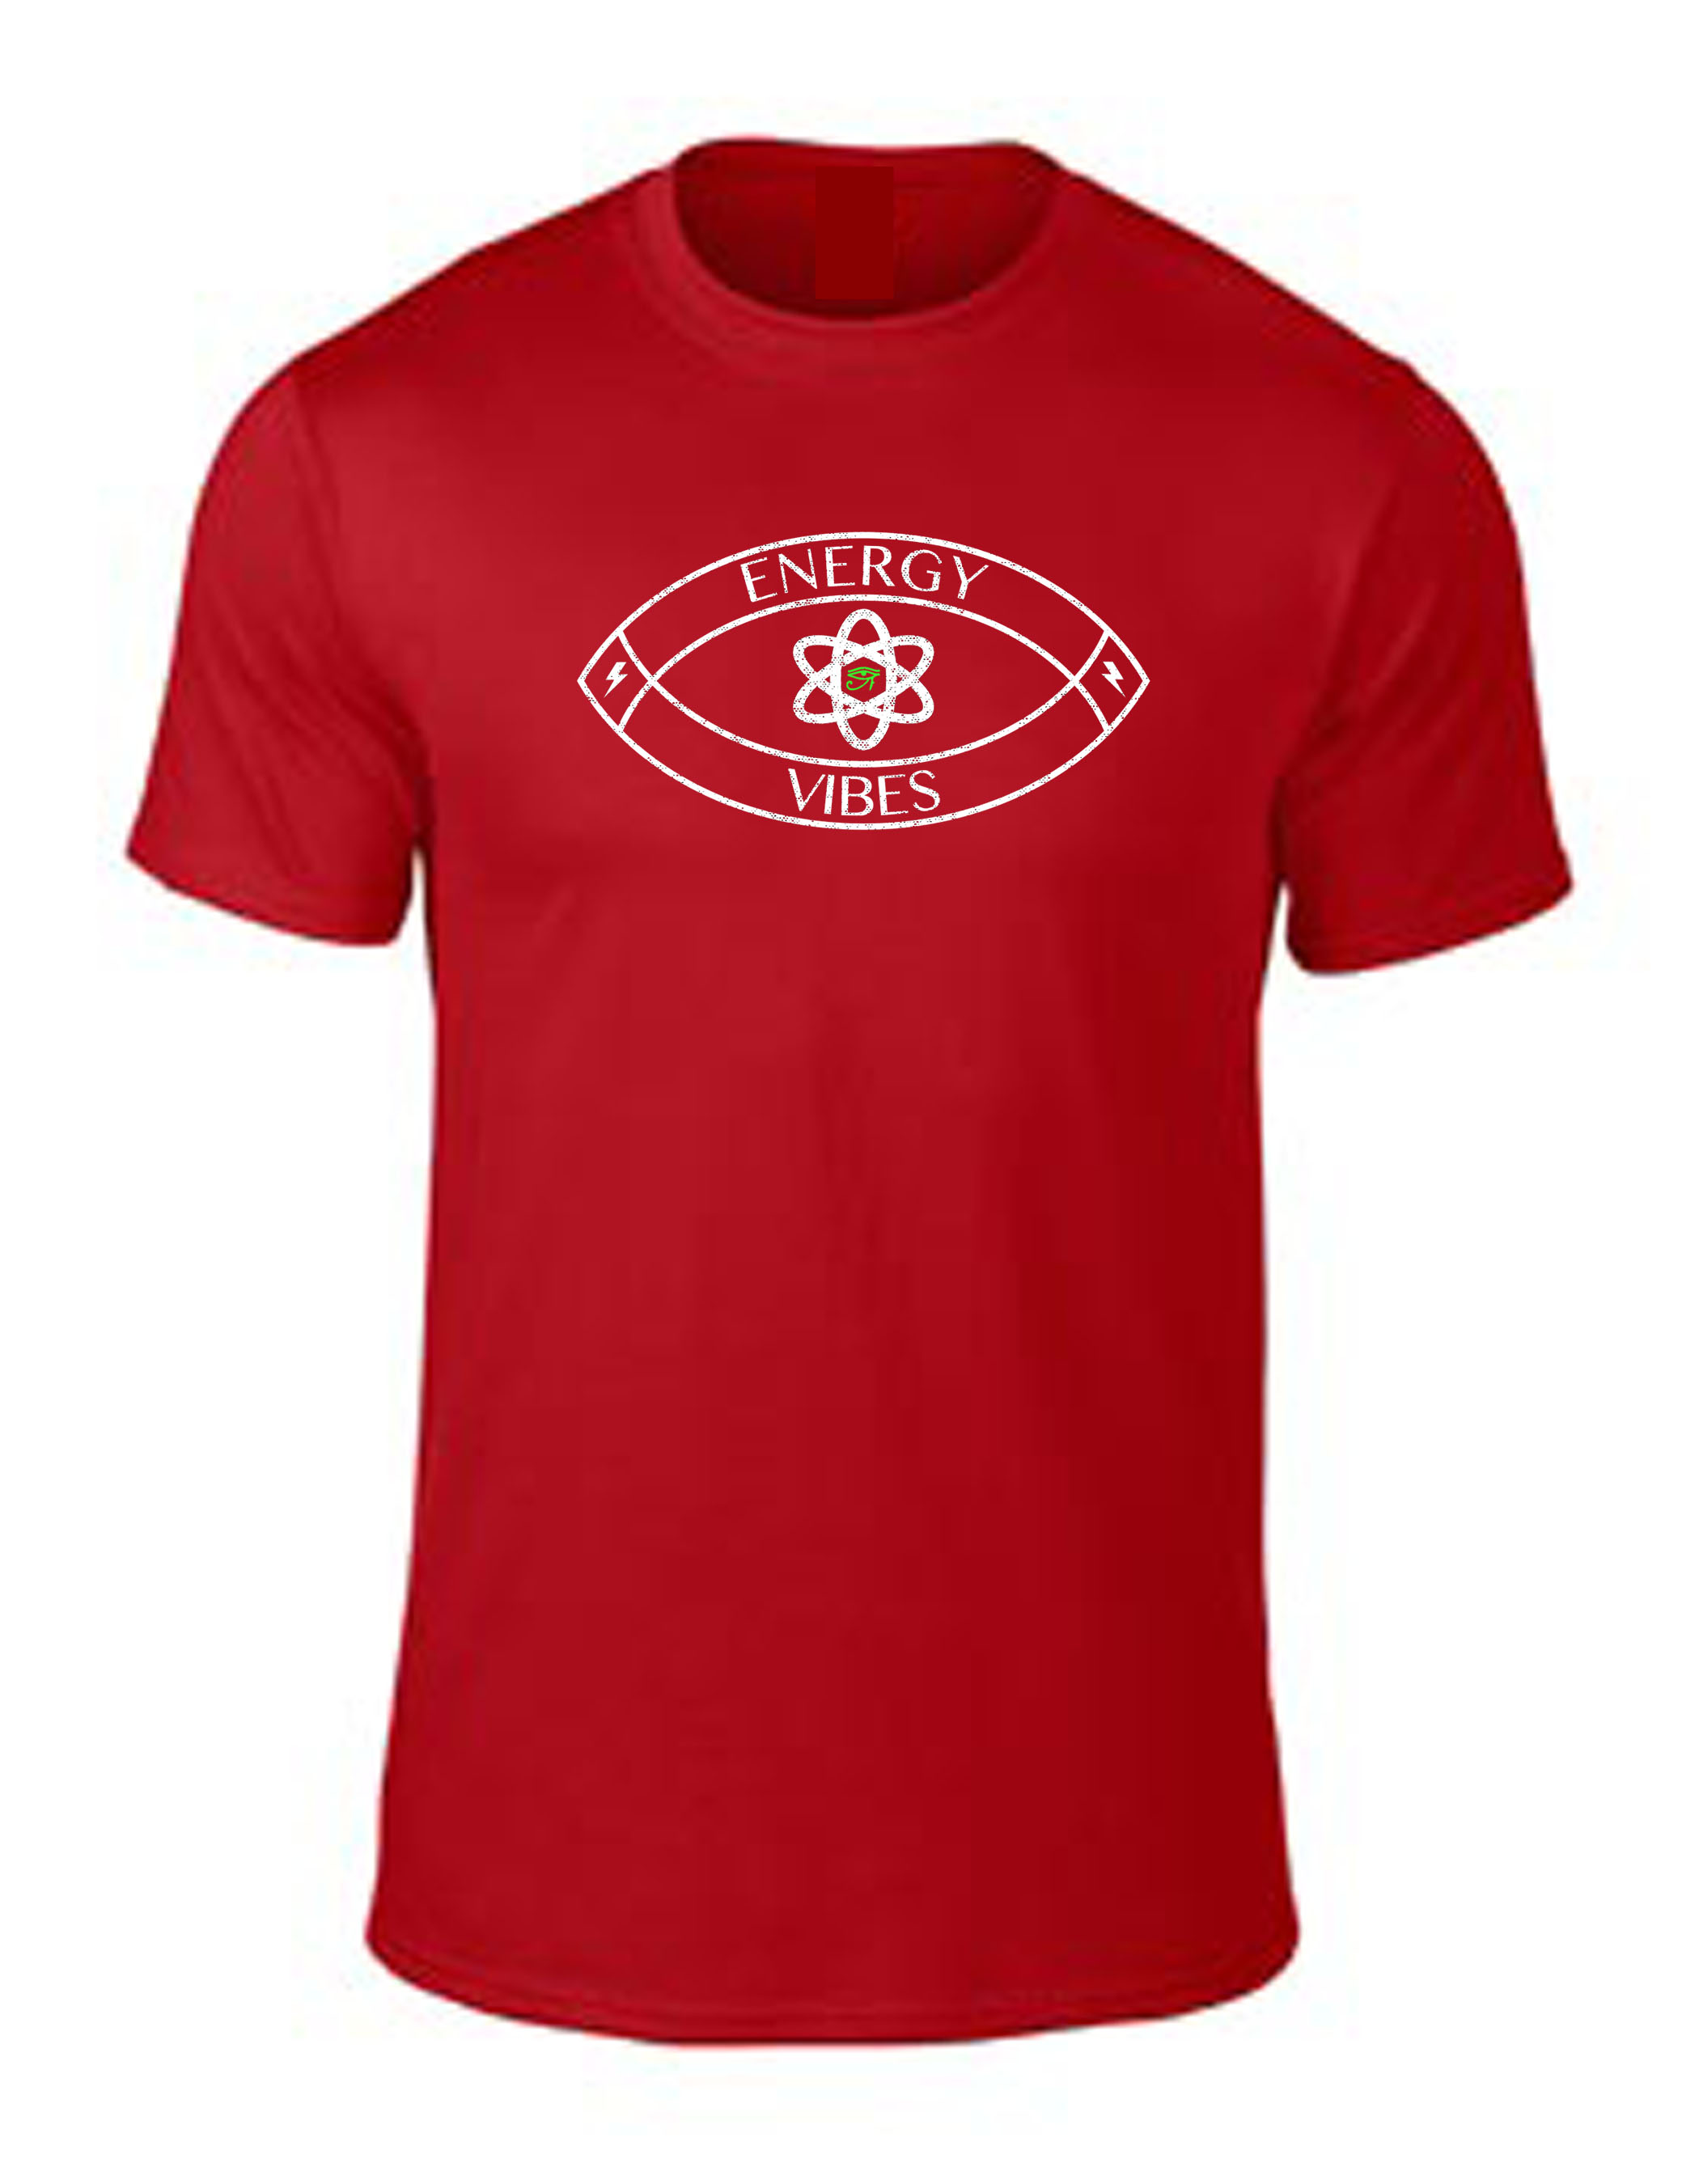 Energy and Vibes Tee Red